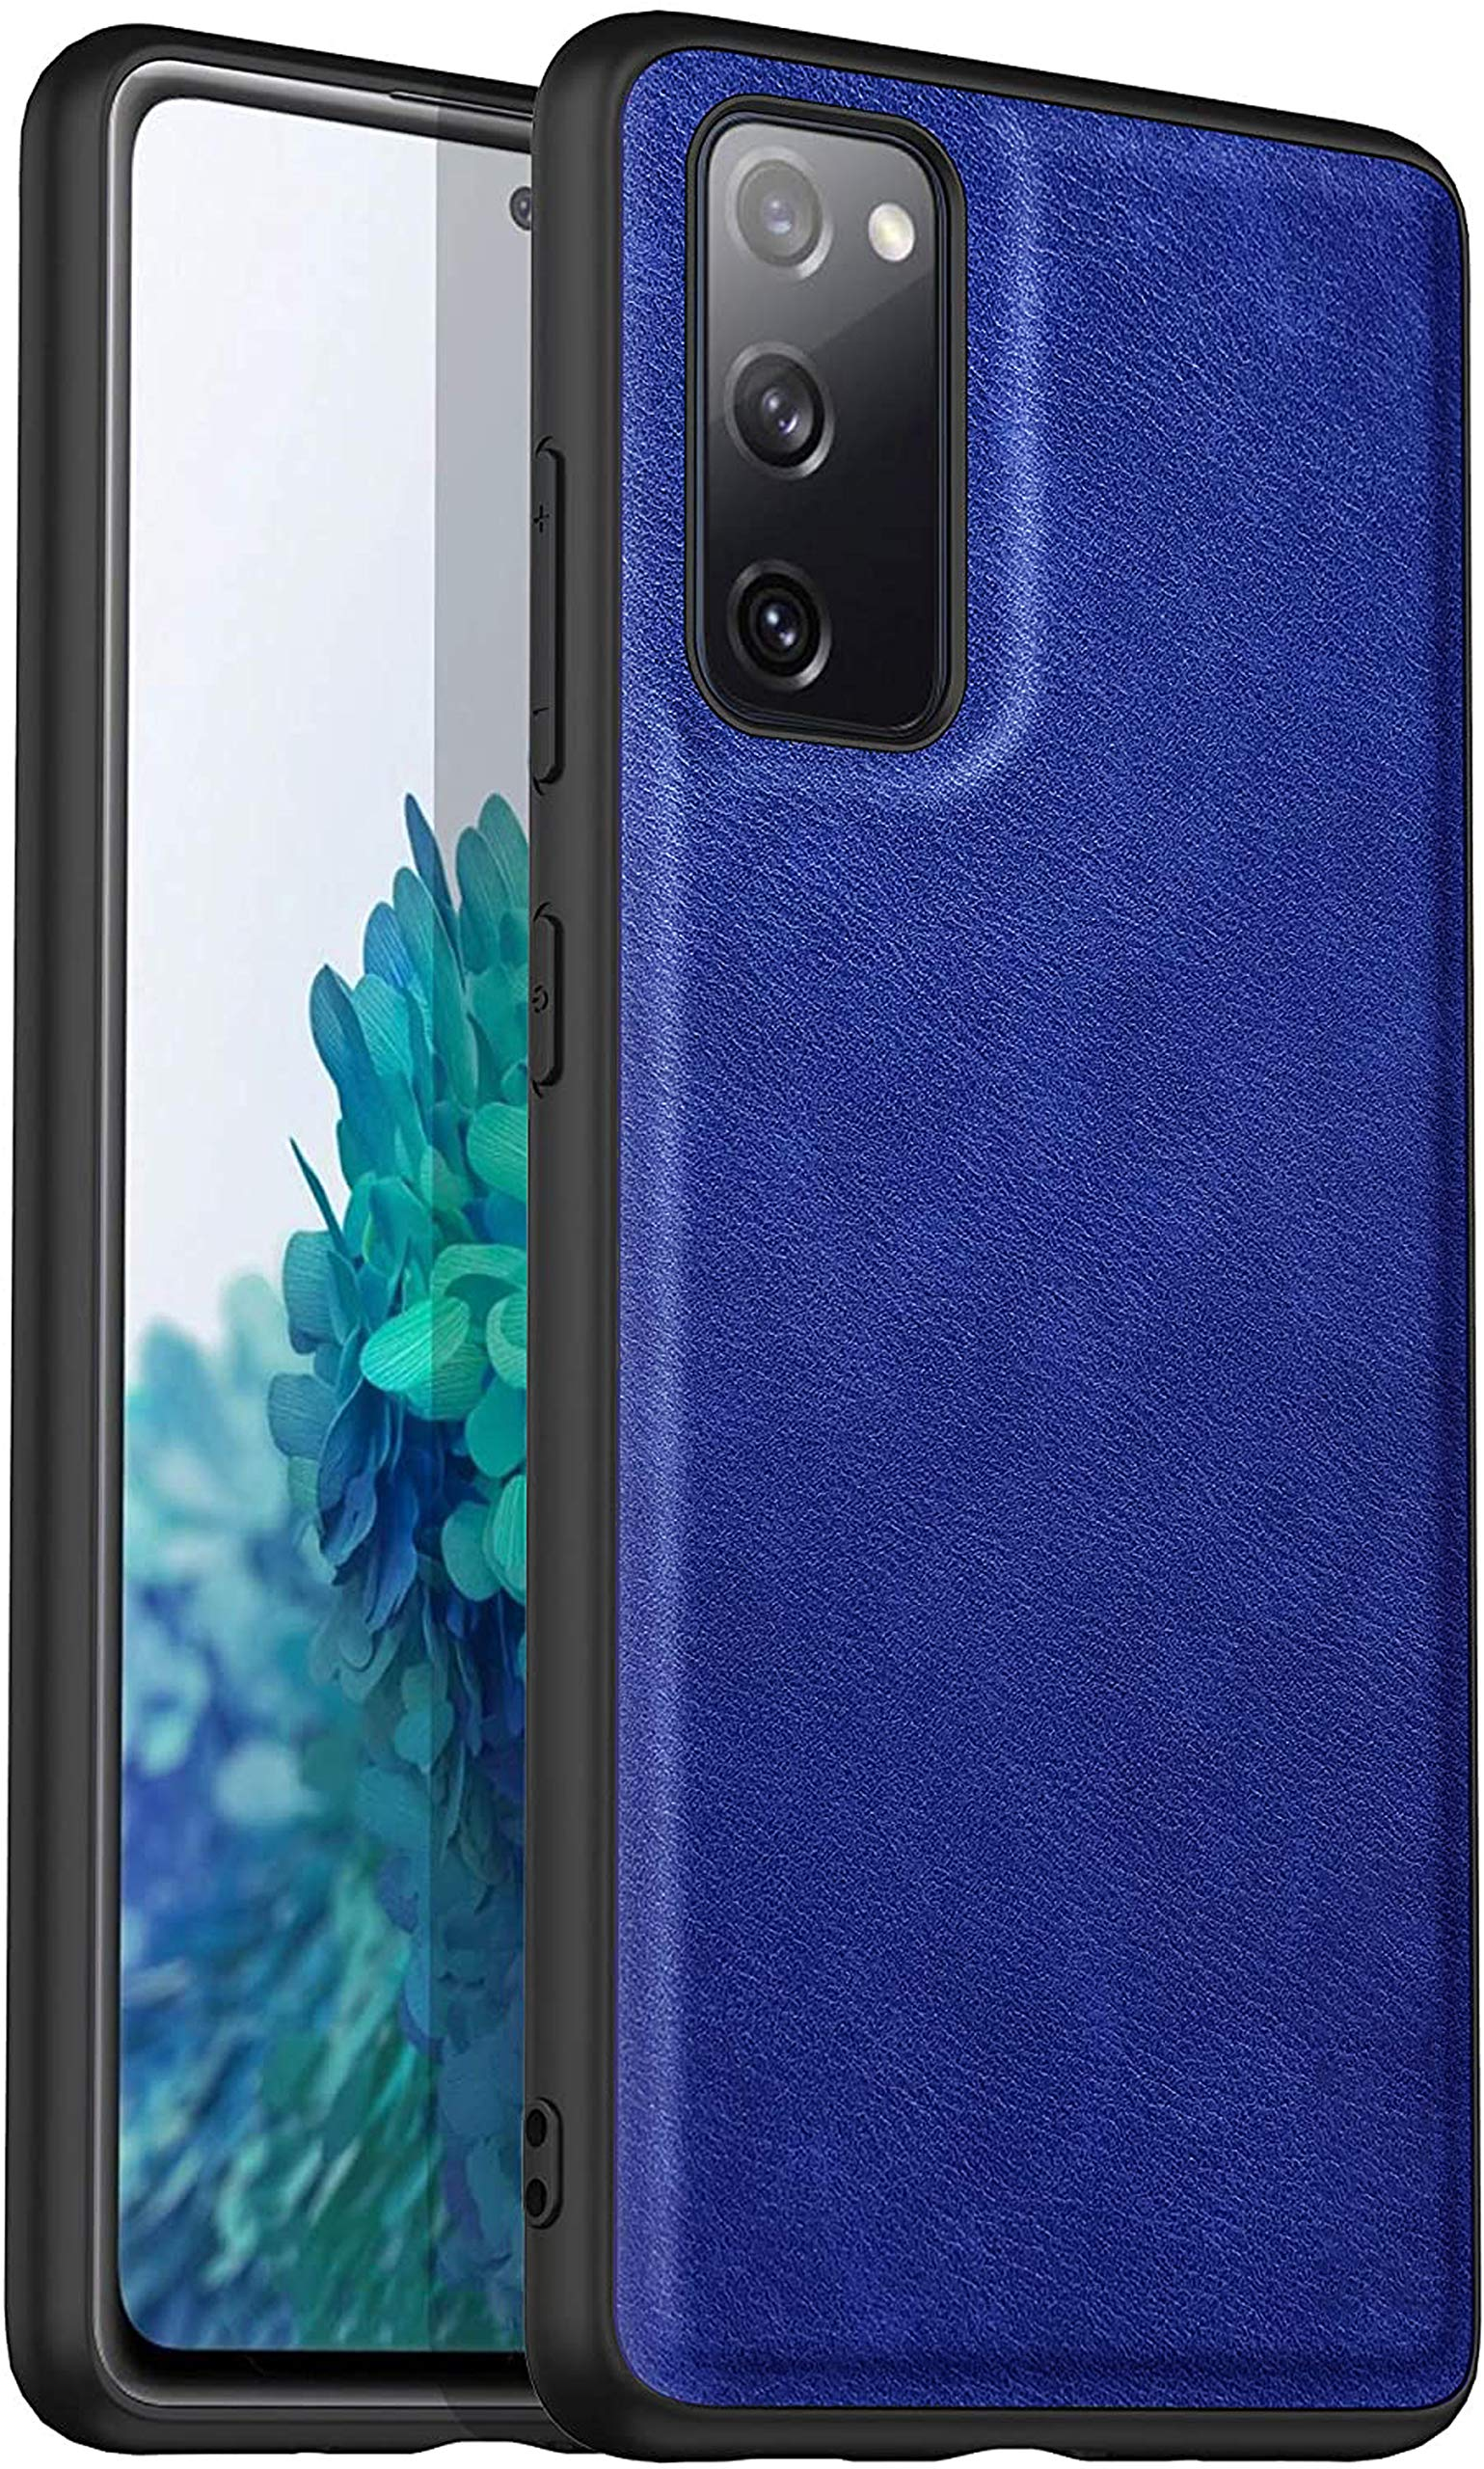 Tux Back Case for Samsun Galaxy S20 FE, Ultra Slim Leather Case with Soft Edge Shockproof Back Cover, Blue